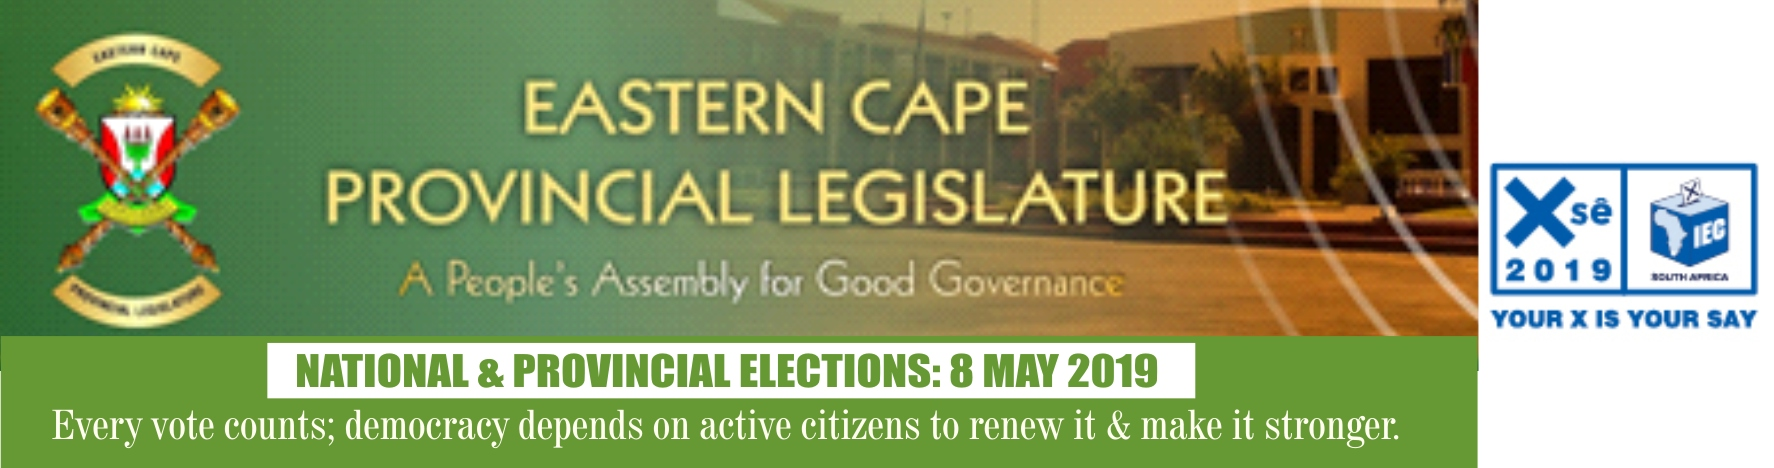 Eastern Cape Provincial Legislature